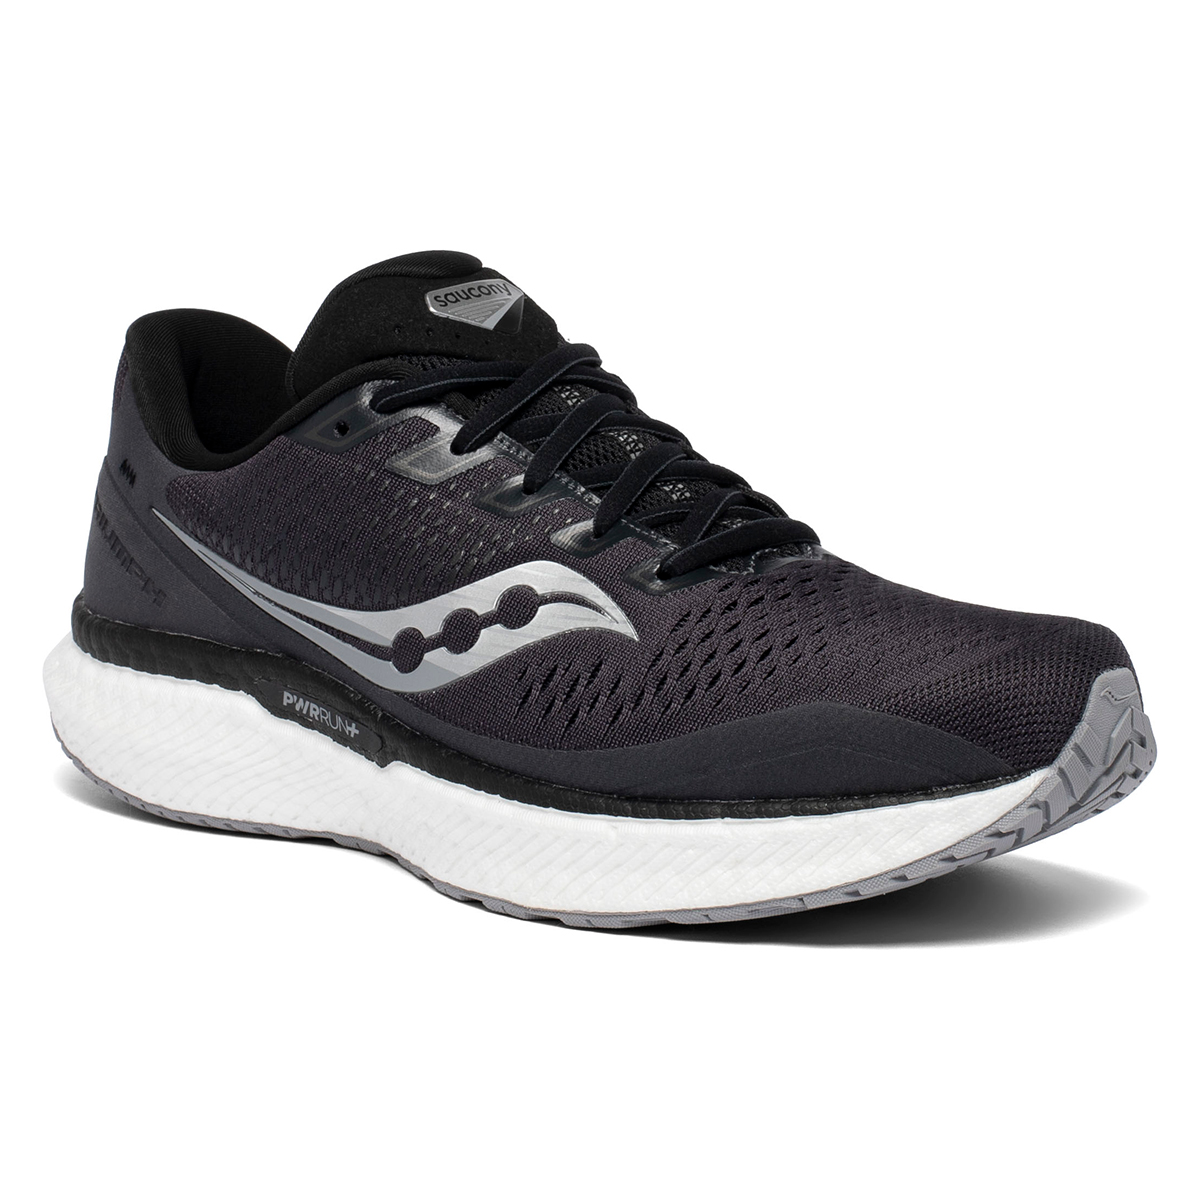 Men's Saucony Triumph 18 Running Shoe - Color: Charcoal/White - Size: 7 - Width: Regular, Charcoal/White, large, image 4